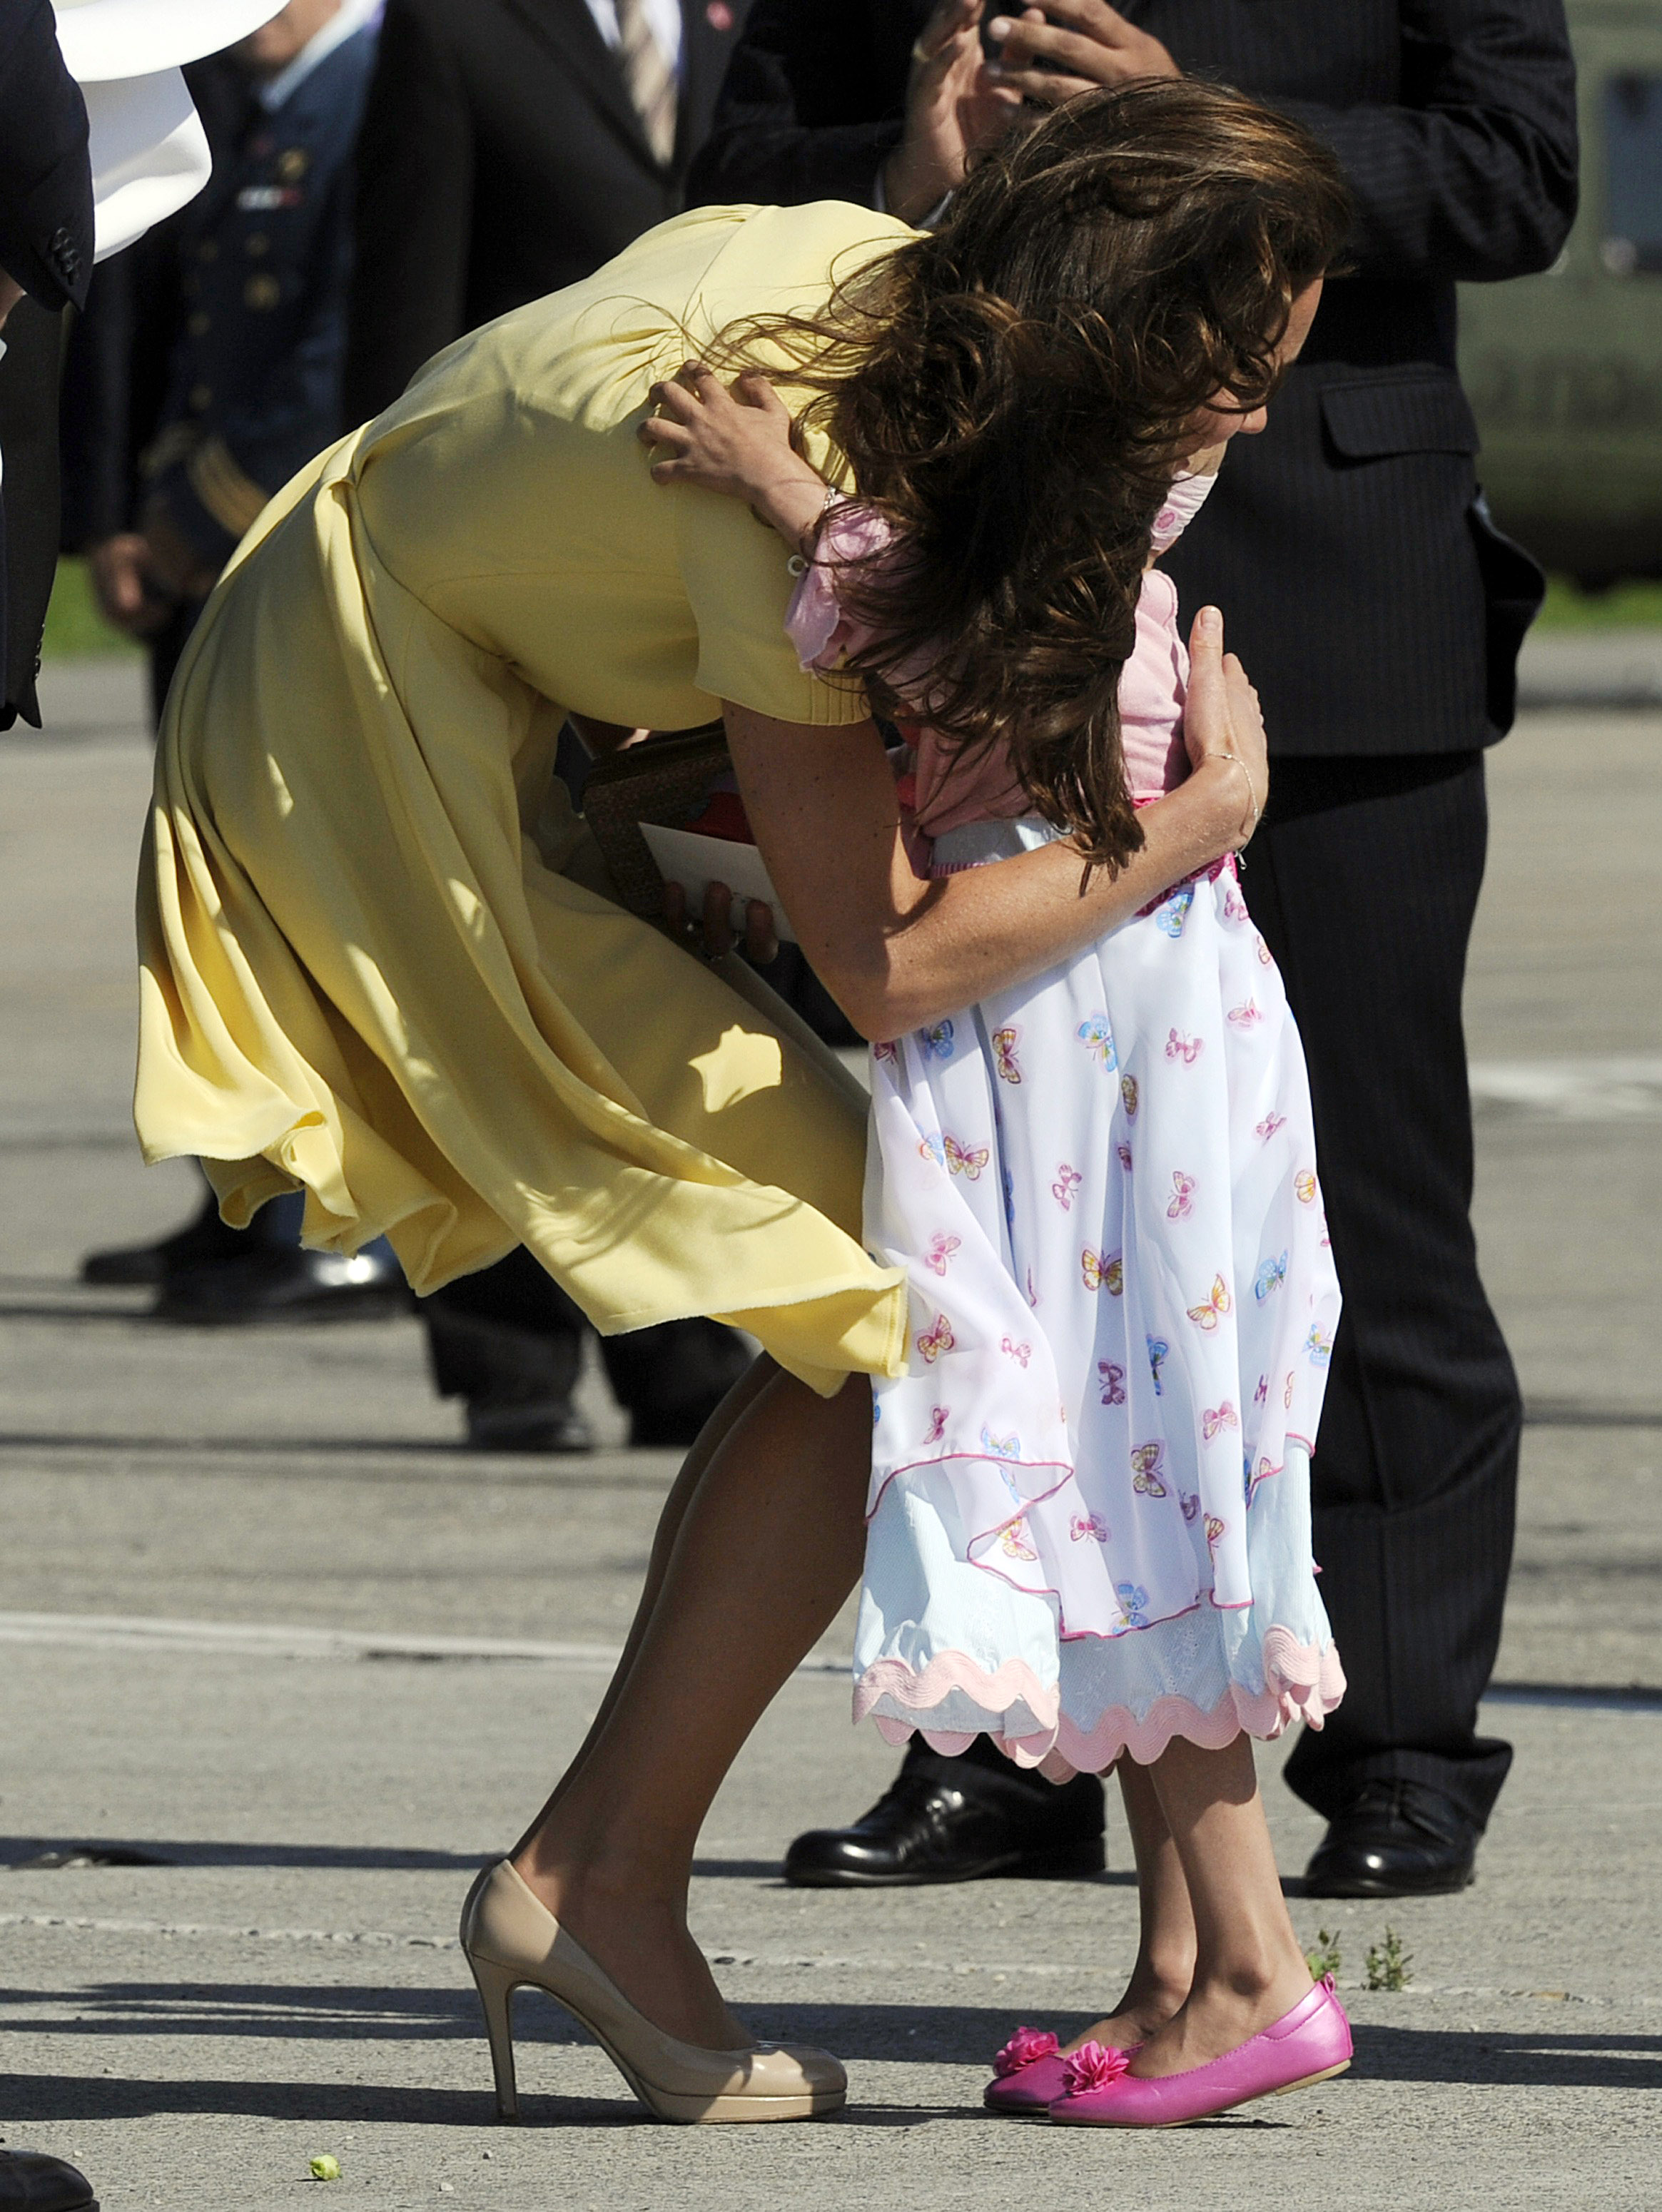 Kate Middleton hugged the 6-year-old upon her arrival in Calgary.